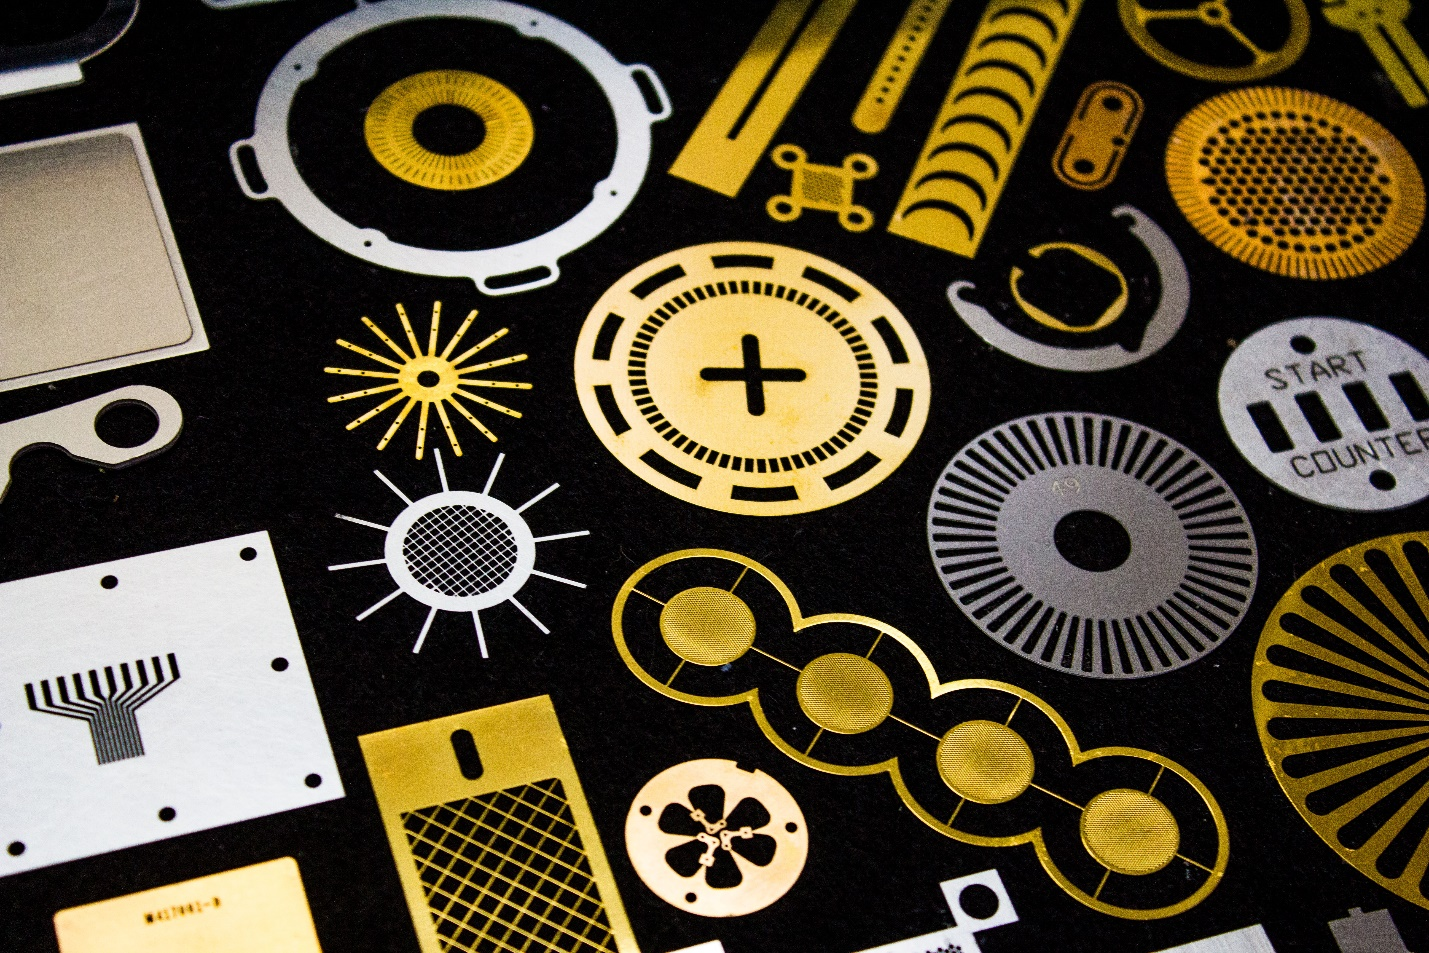 A picture showing many possible types and shapes of photo etched parts.